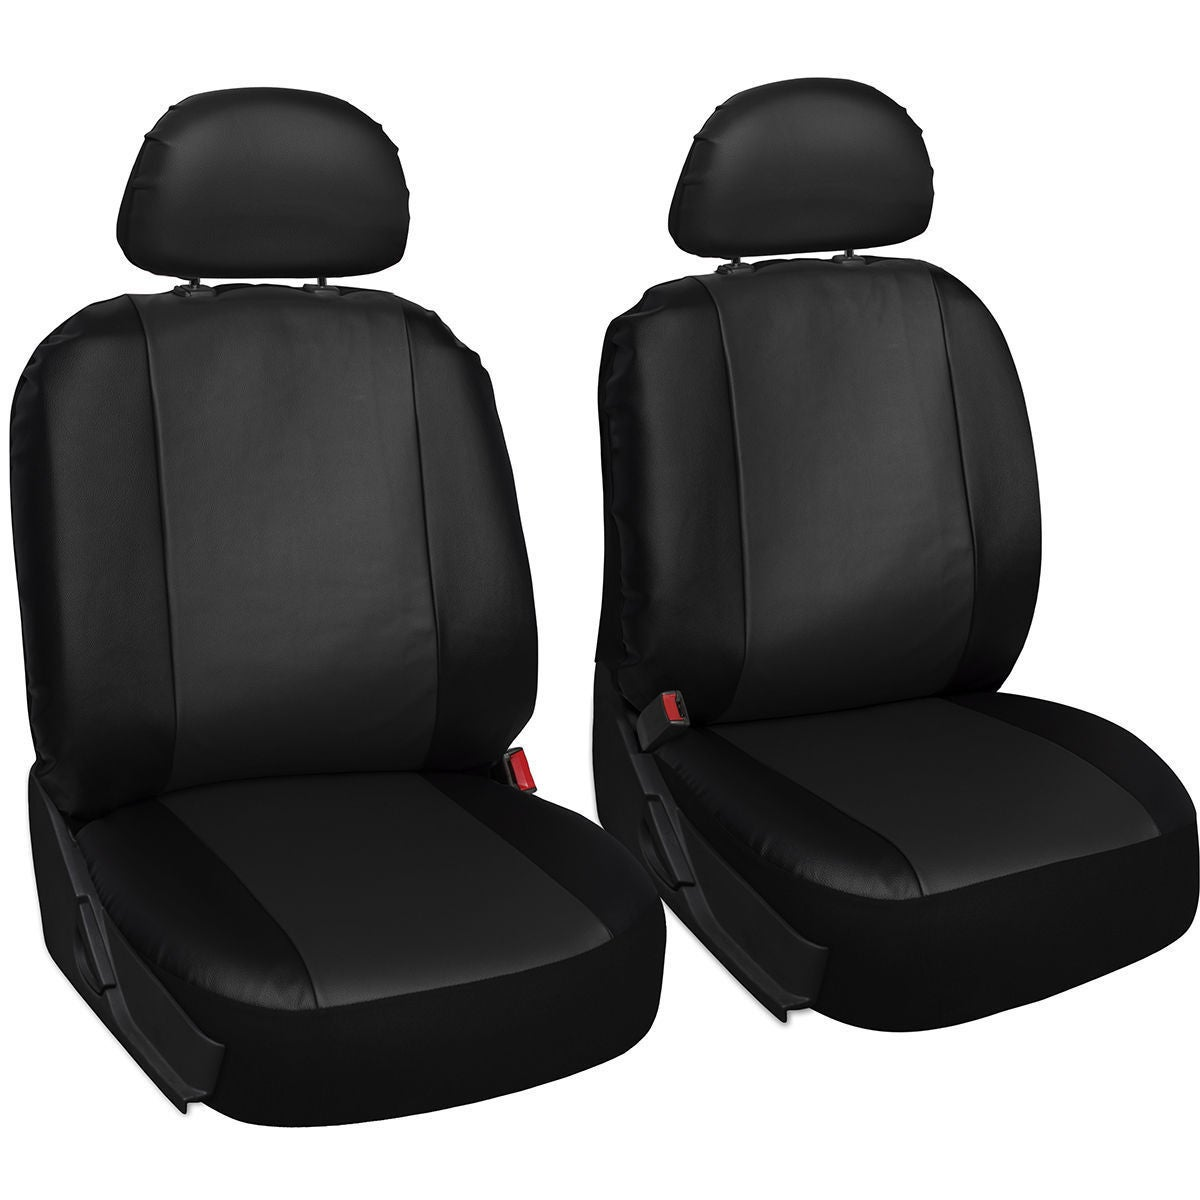 6pc Gray Black Seat Covers Separate Headrest Covers Universal Set